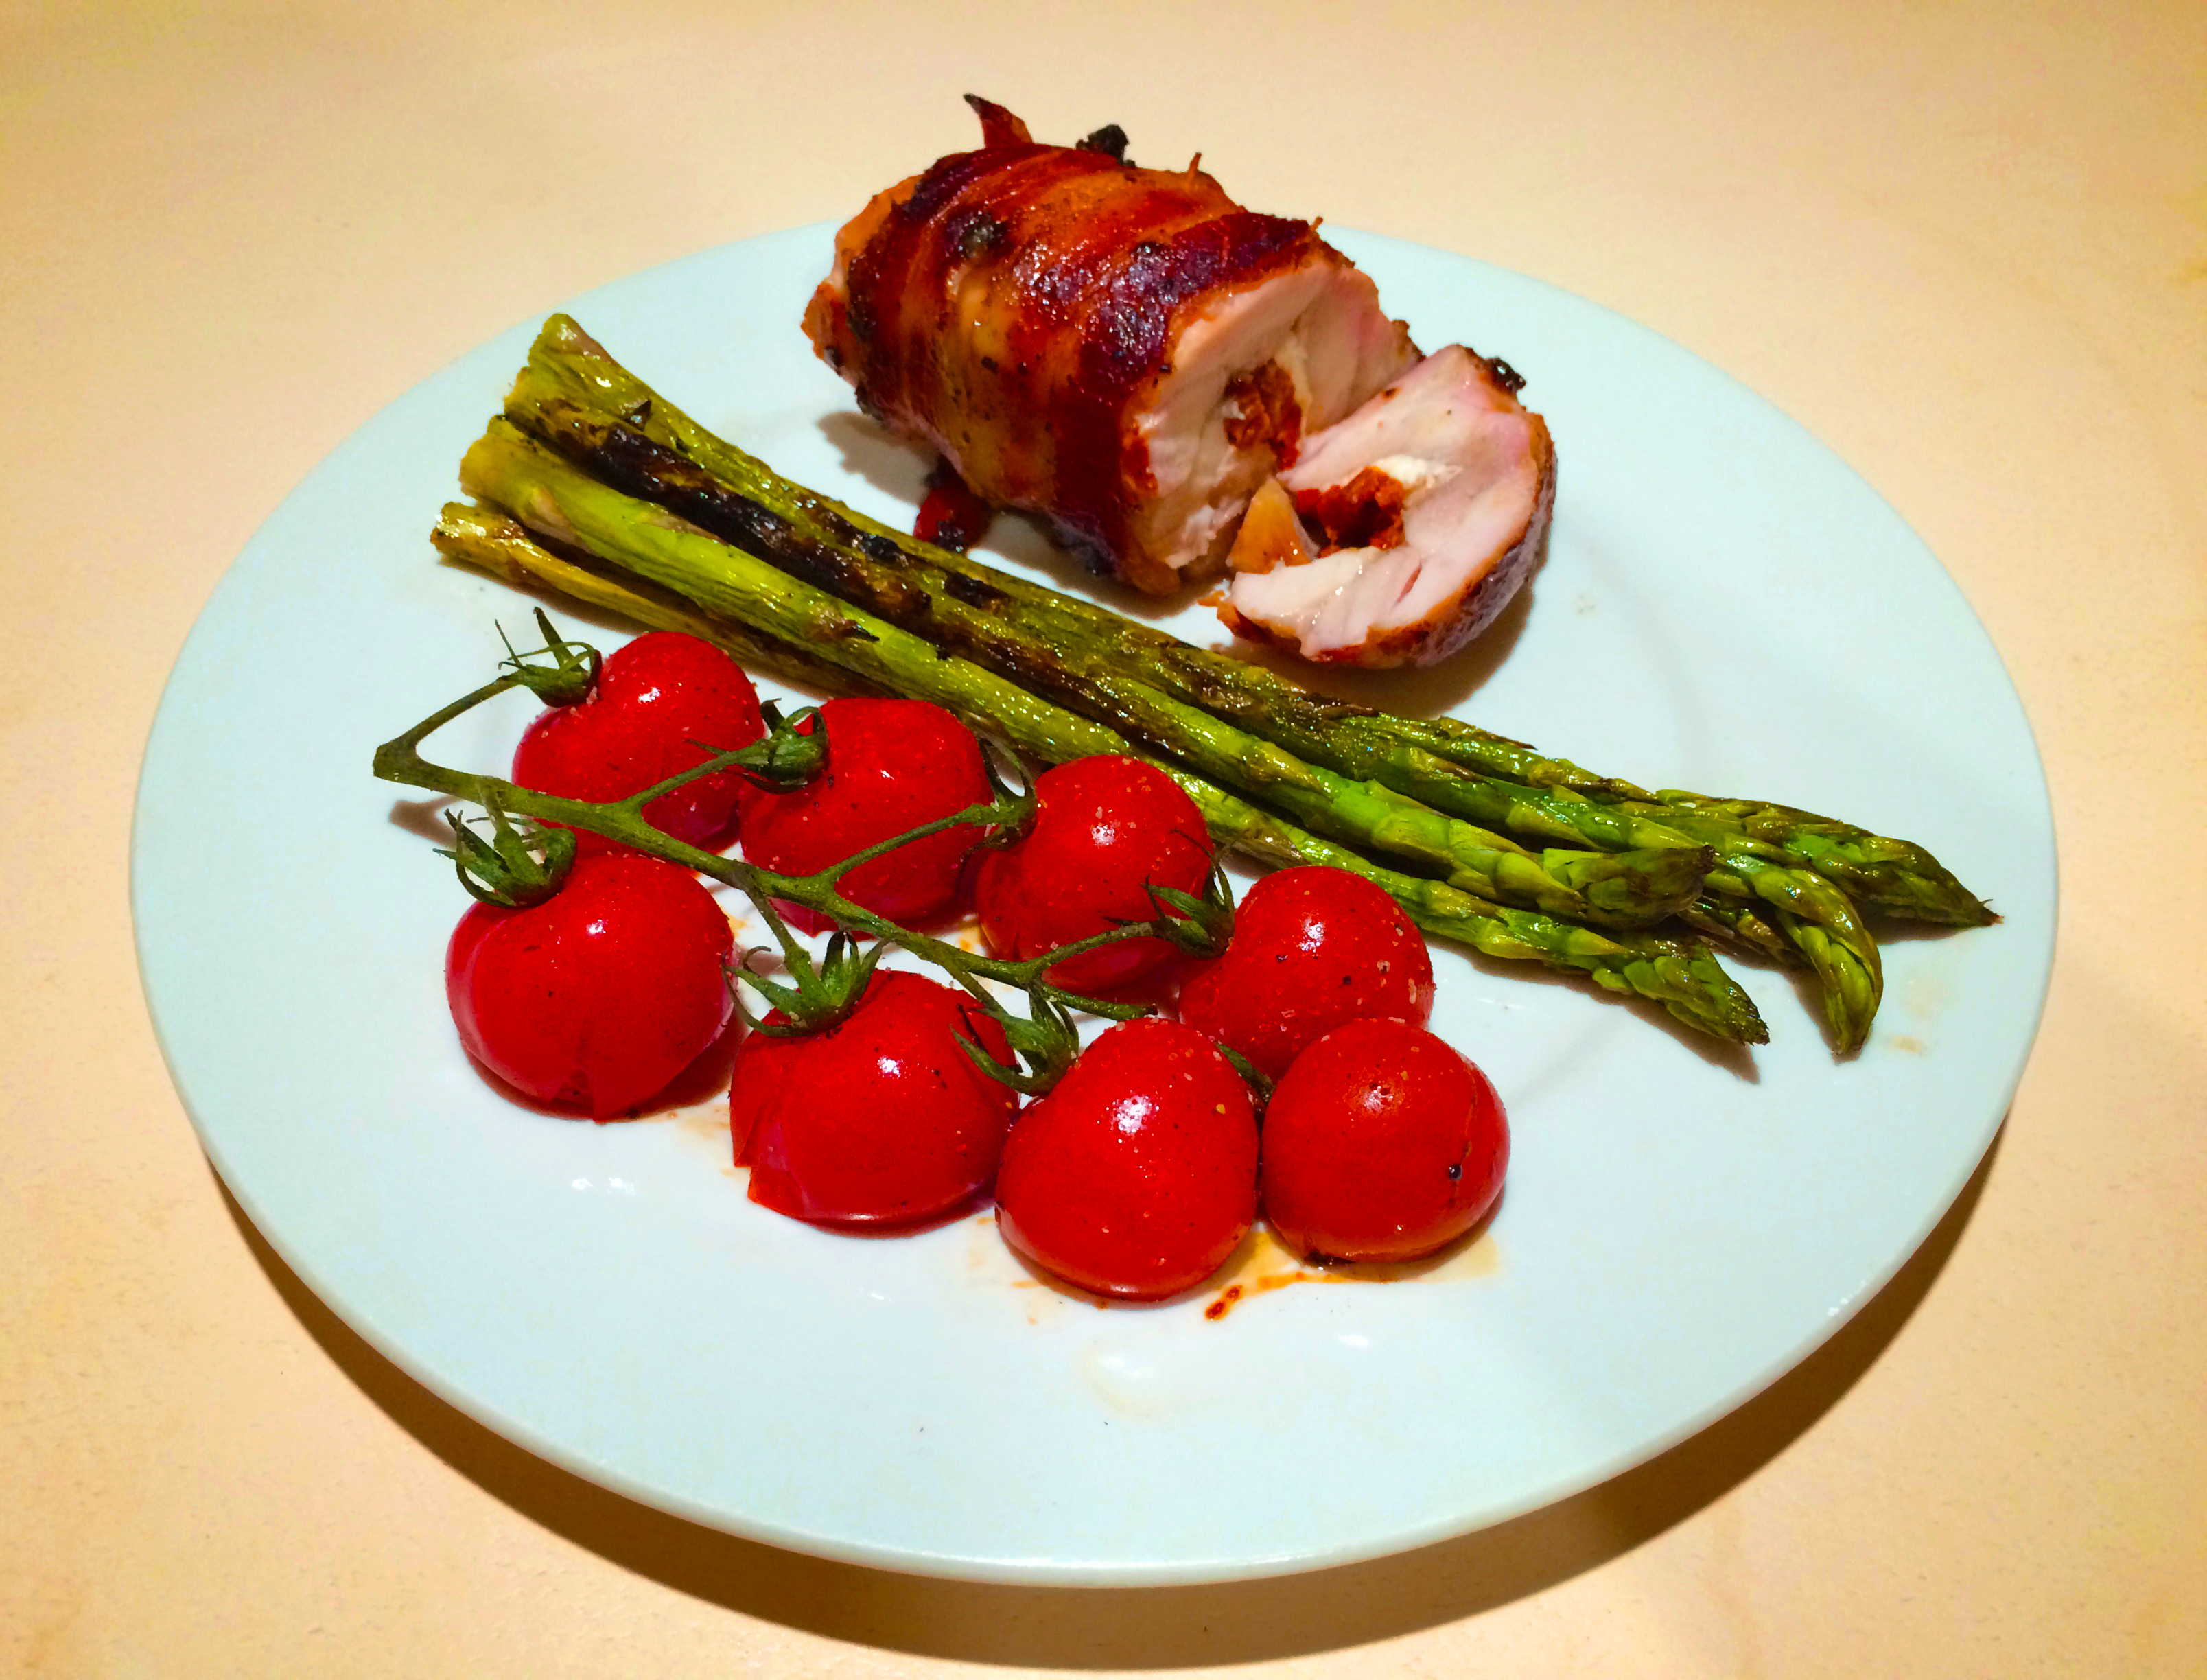 Stuffed Chicken Thighs with Vine-Ripened Cherry Tomatoes and Asparagus